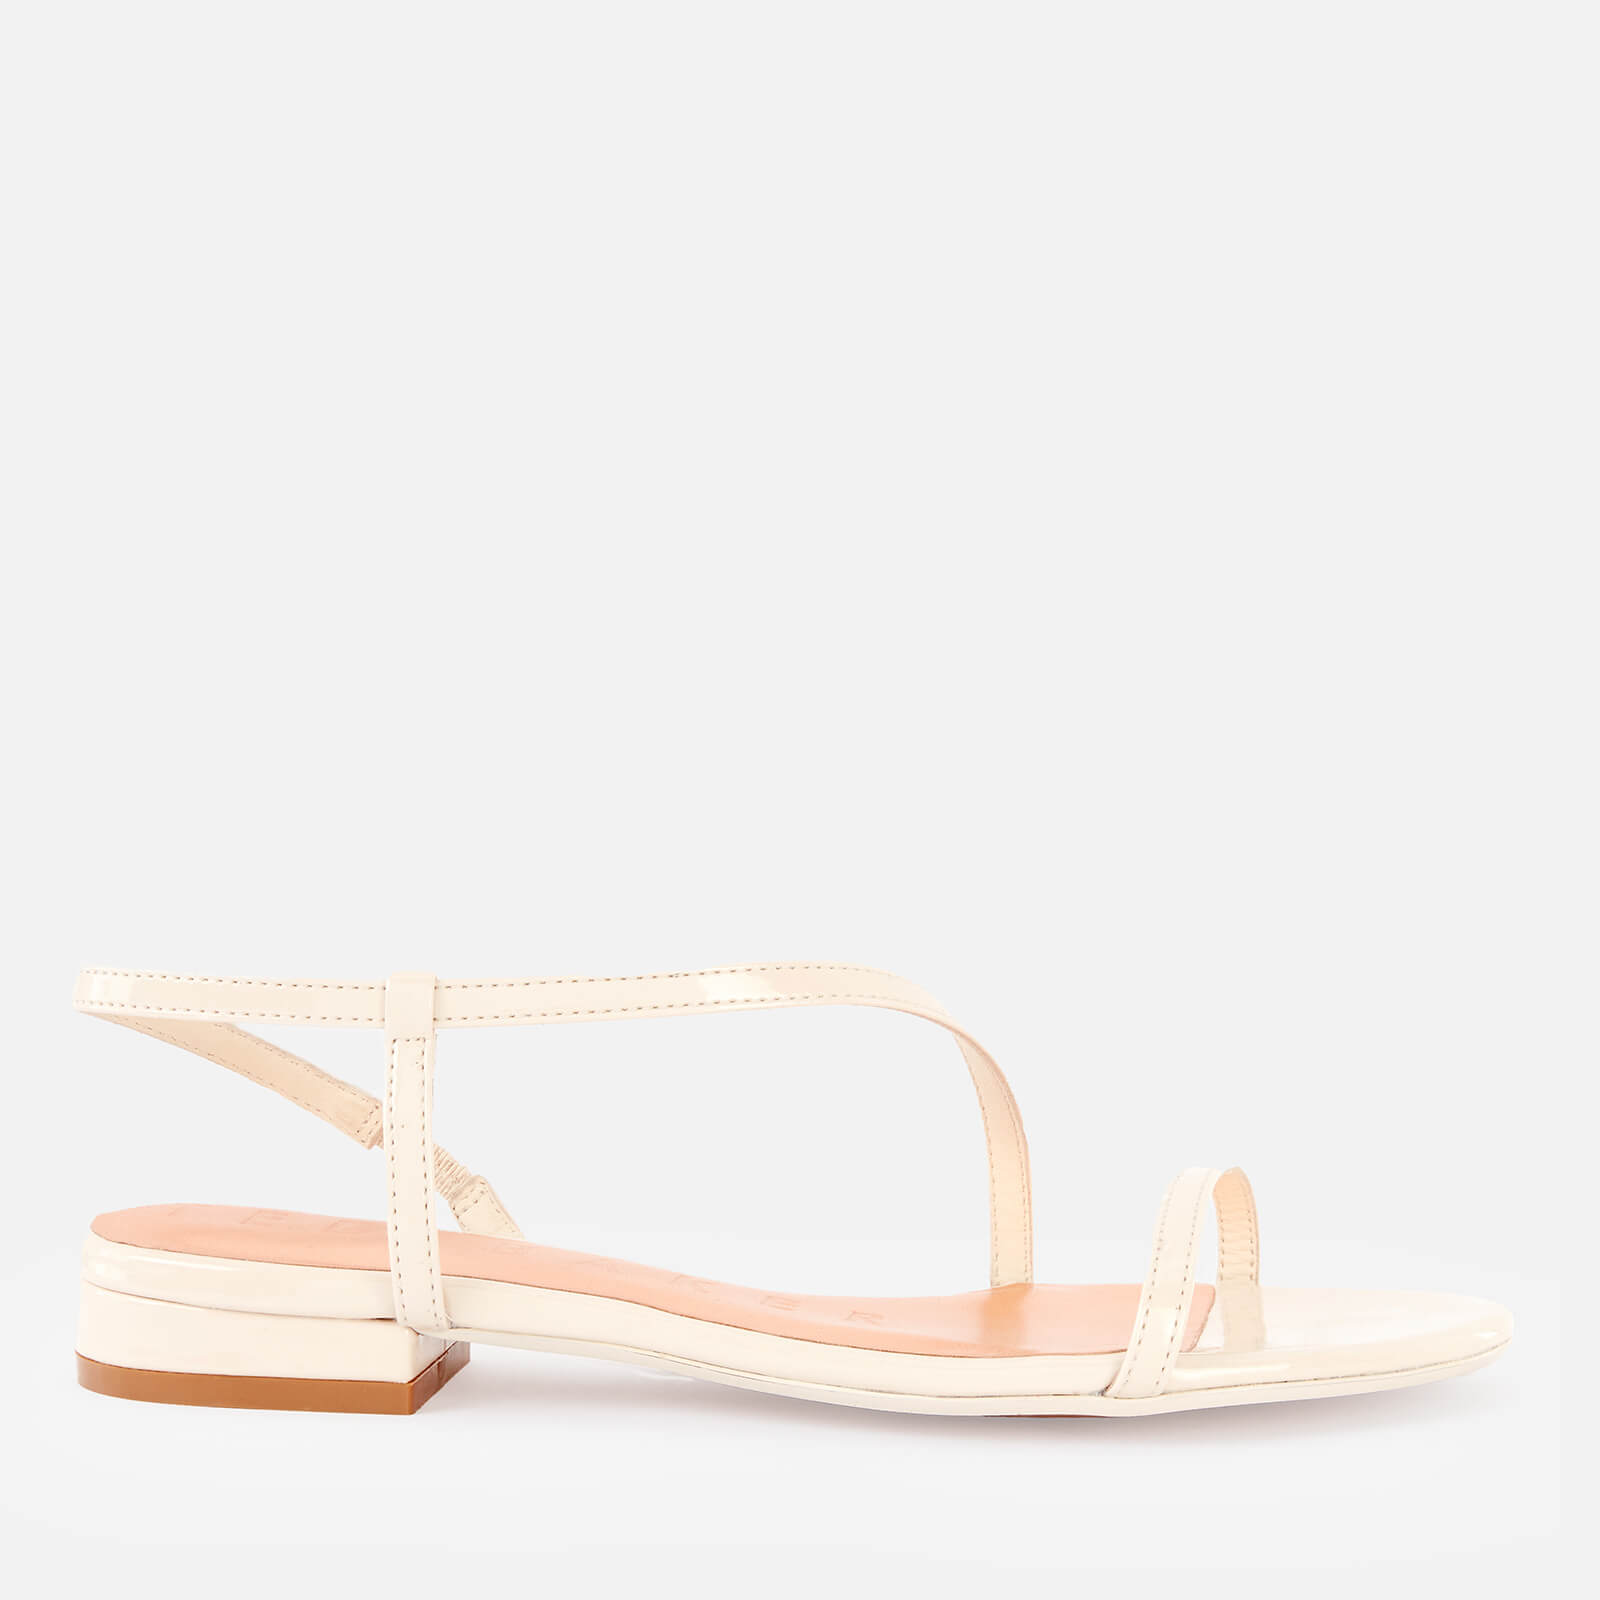 Ted Baker Women's Pepell Flat Sandals - Nude - UK 3